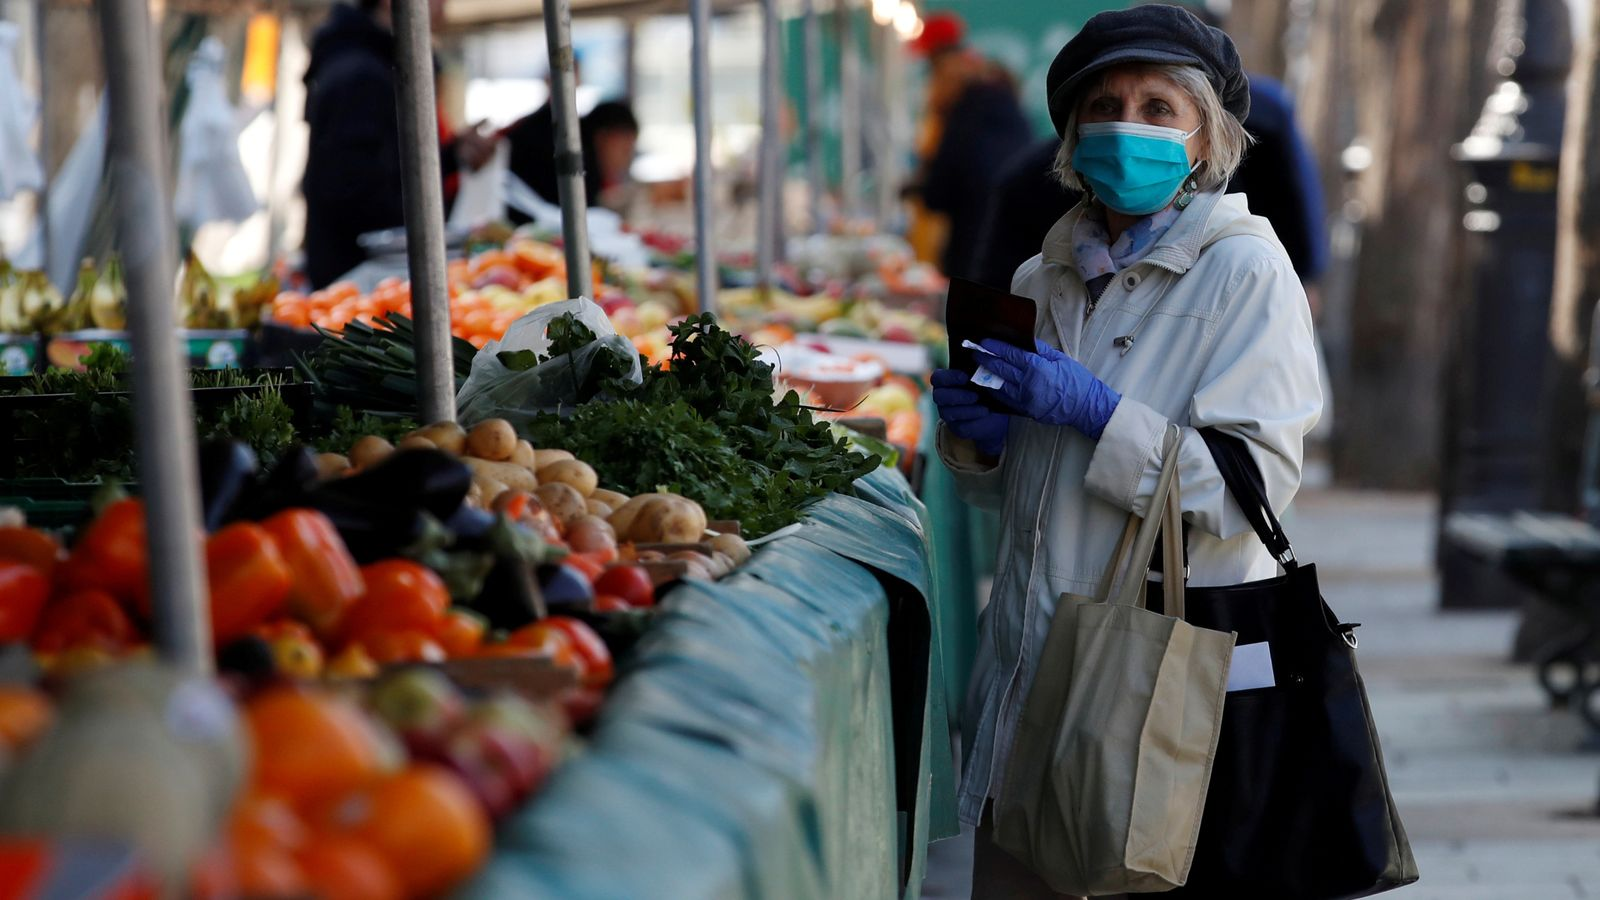 Coronavirus: France and Germany count economic cost of crisis